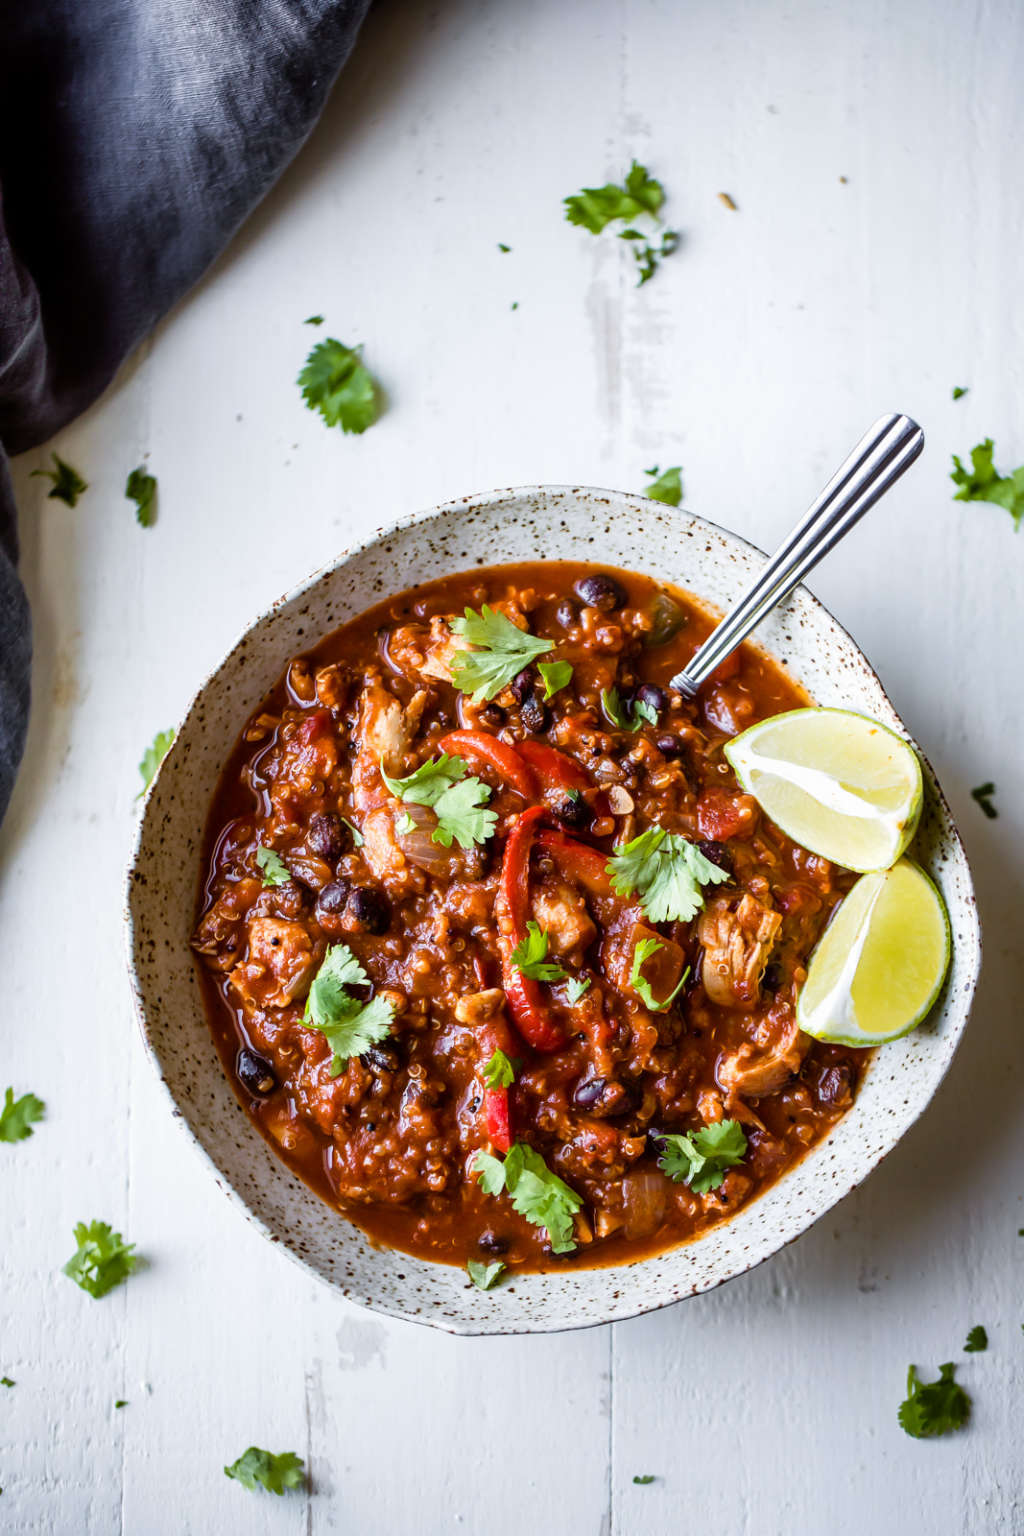 Slow Cooker Pumpkin & Chicken Chili for Cozy Fall Nights